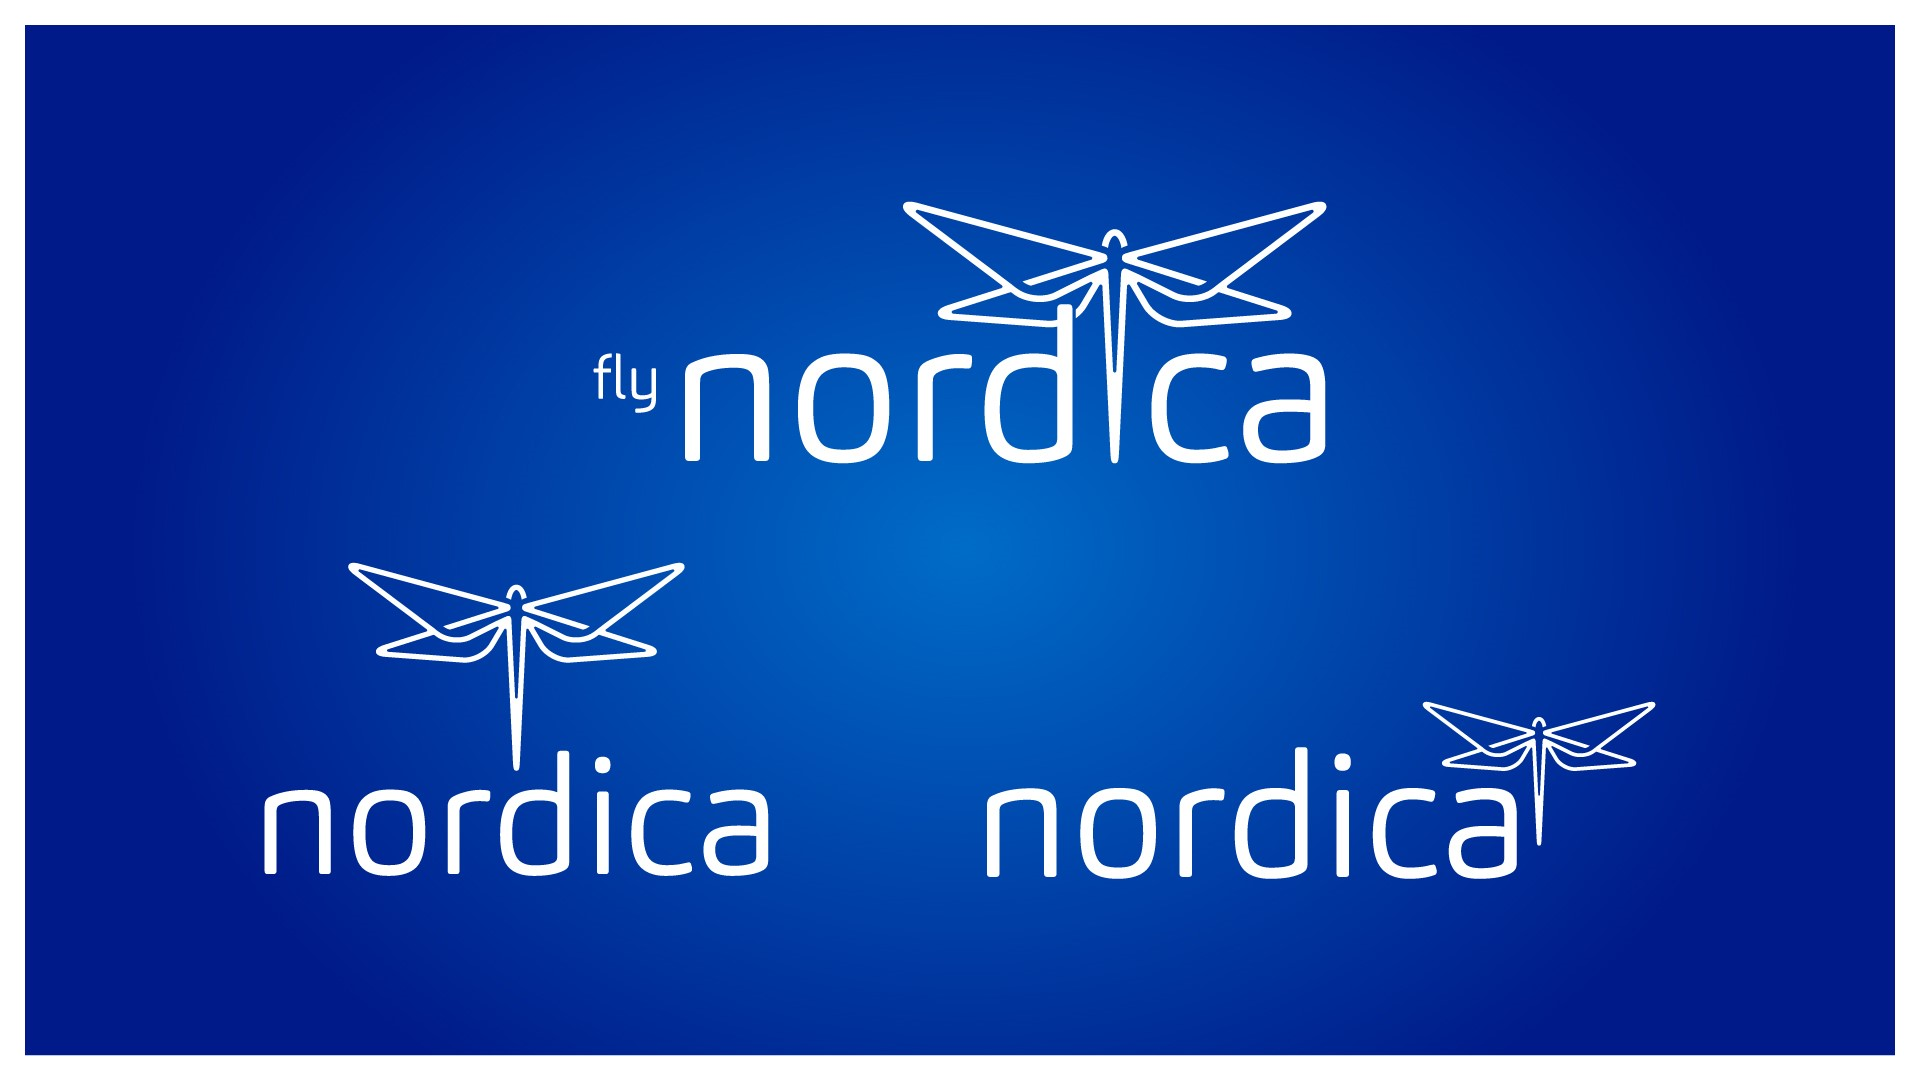 Allikas: Nordic Aviation Group koduleht